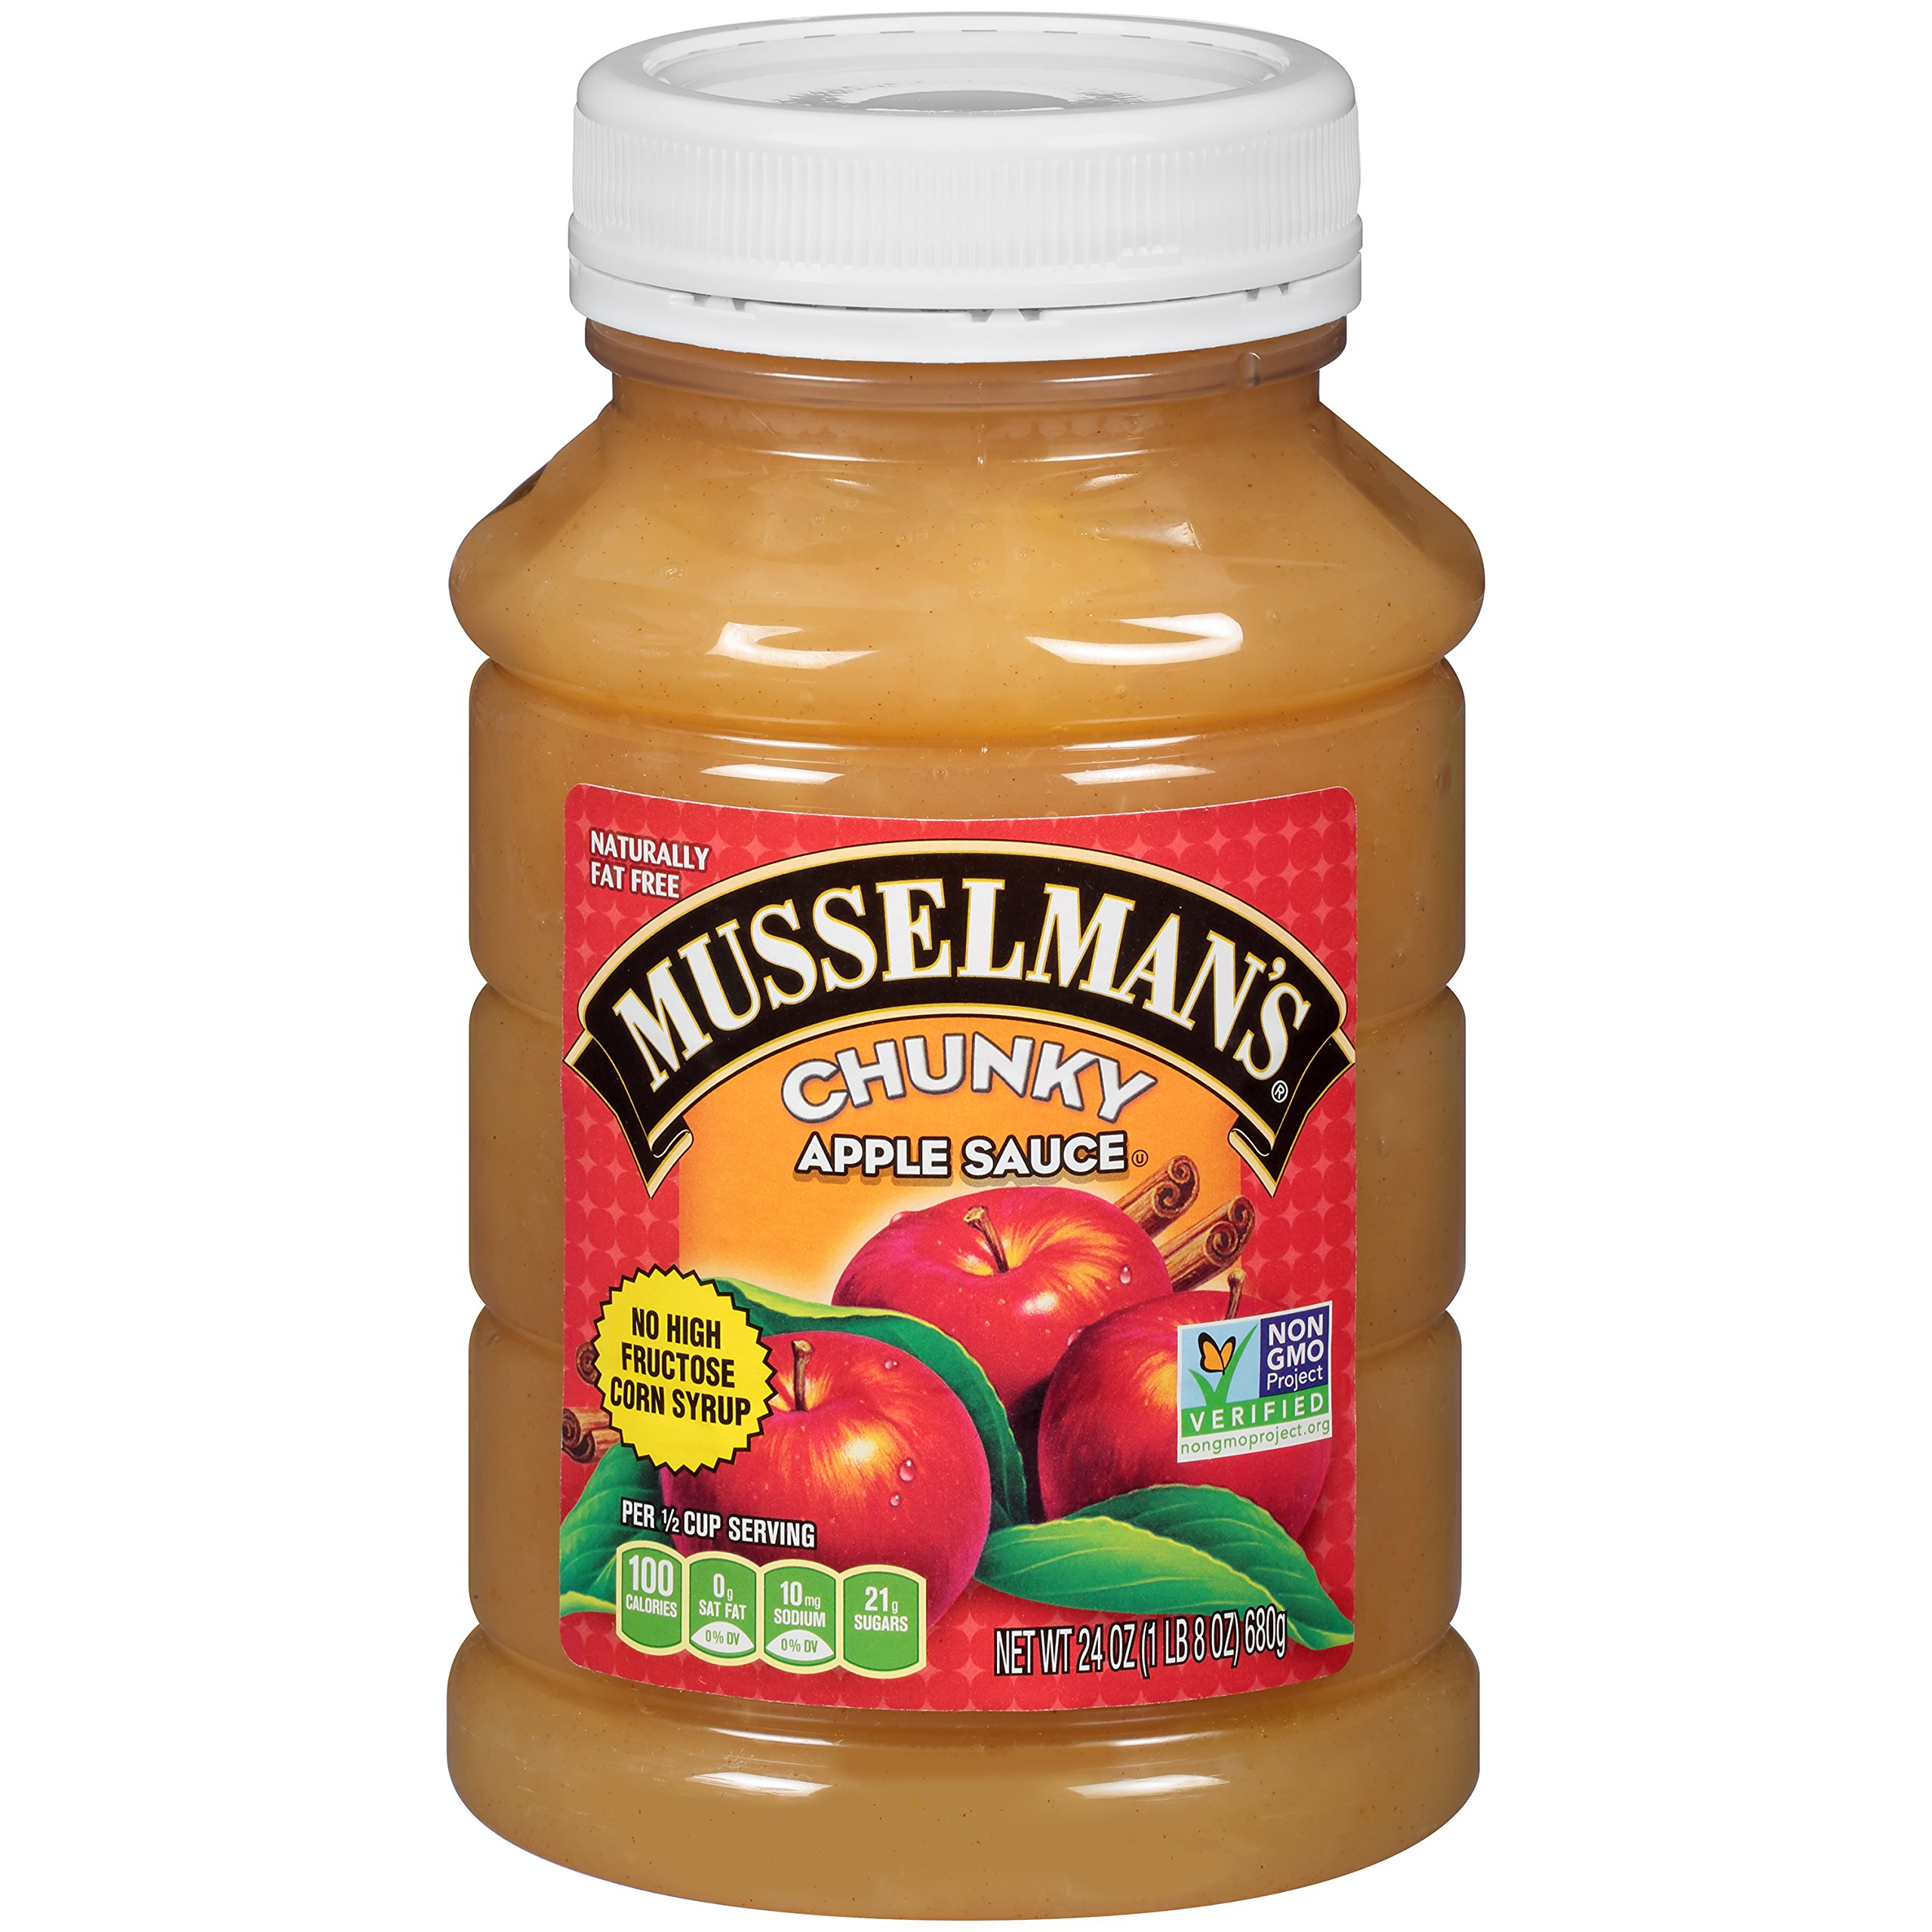 Musselman's Chunky Apple Sauce Plastic Jars, 24 Ounce (Pack of 12) by Musselmans (Image #8)